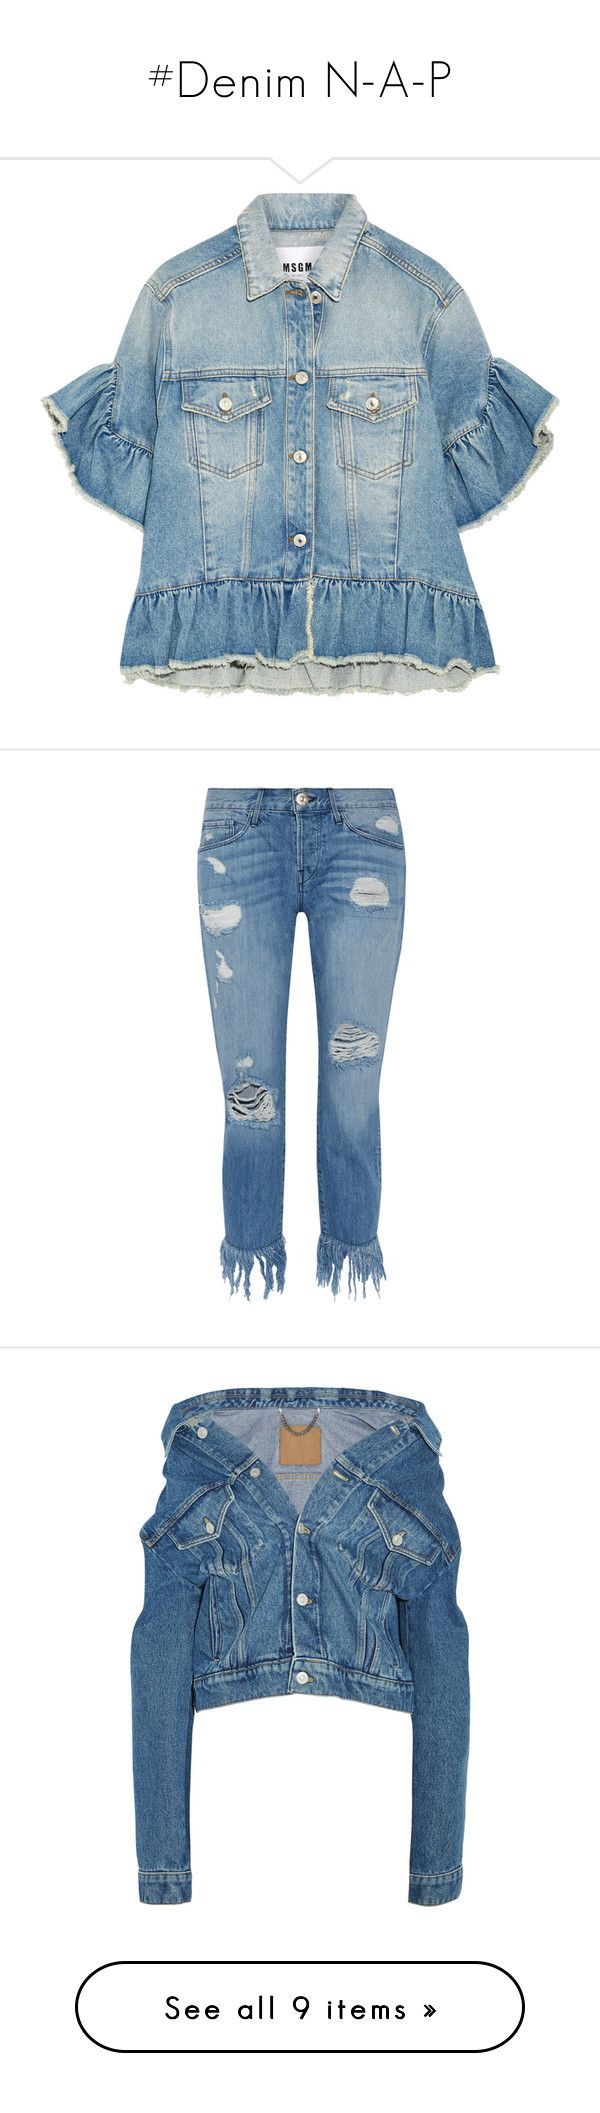 """""""#Denim N-A-P"""" by lolgenie ❤ liked on Polyvore featuring outerwear, jackets, light blue, blue jean jacket, blue jackets, distressed denim jacket, jean jacket, distressed jacket, jeans and pants"""